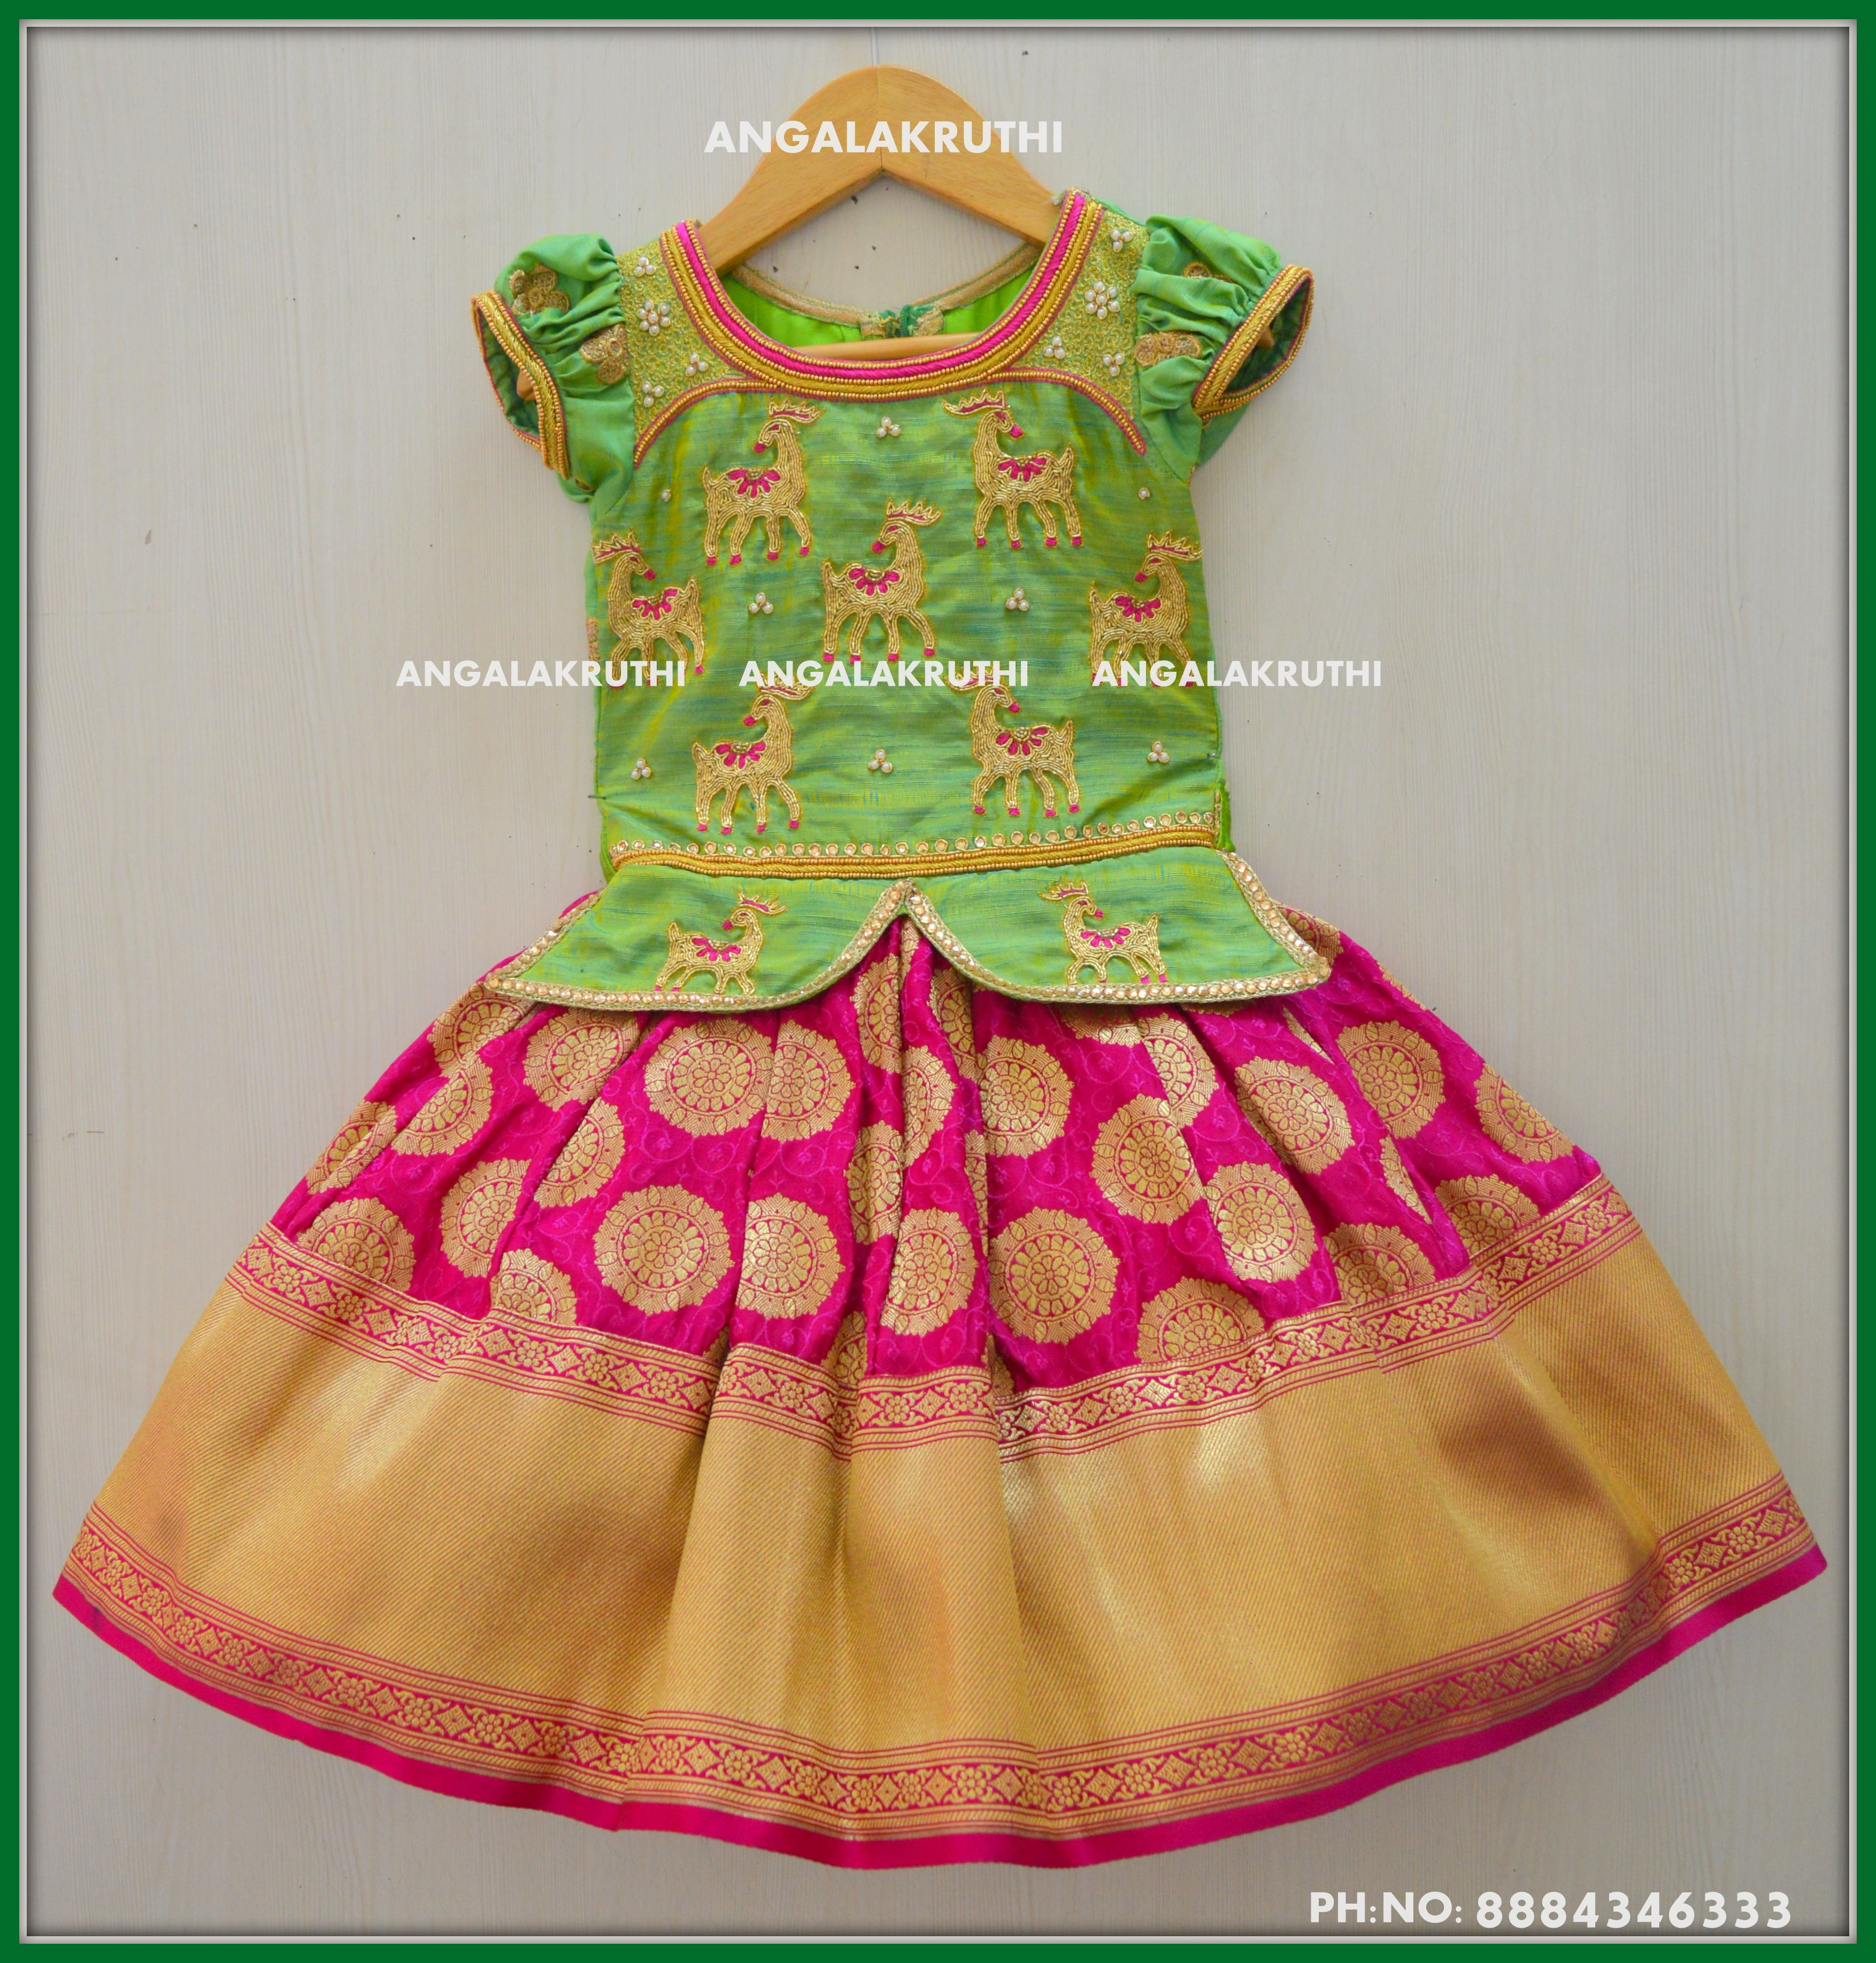 9e30a30b5b0 Kids tradational dress designs by Angalakruthi bangalore custom designer  boutique with online order placement service and international service